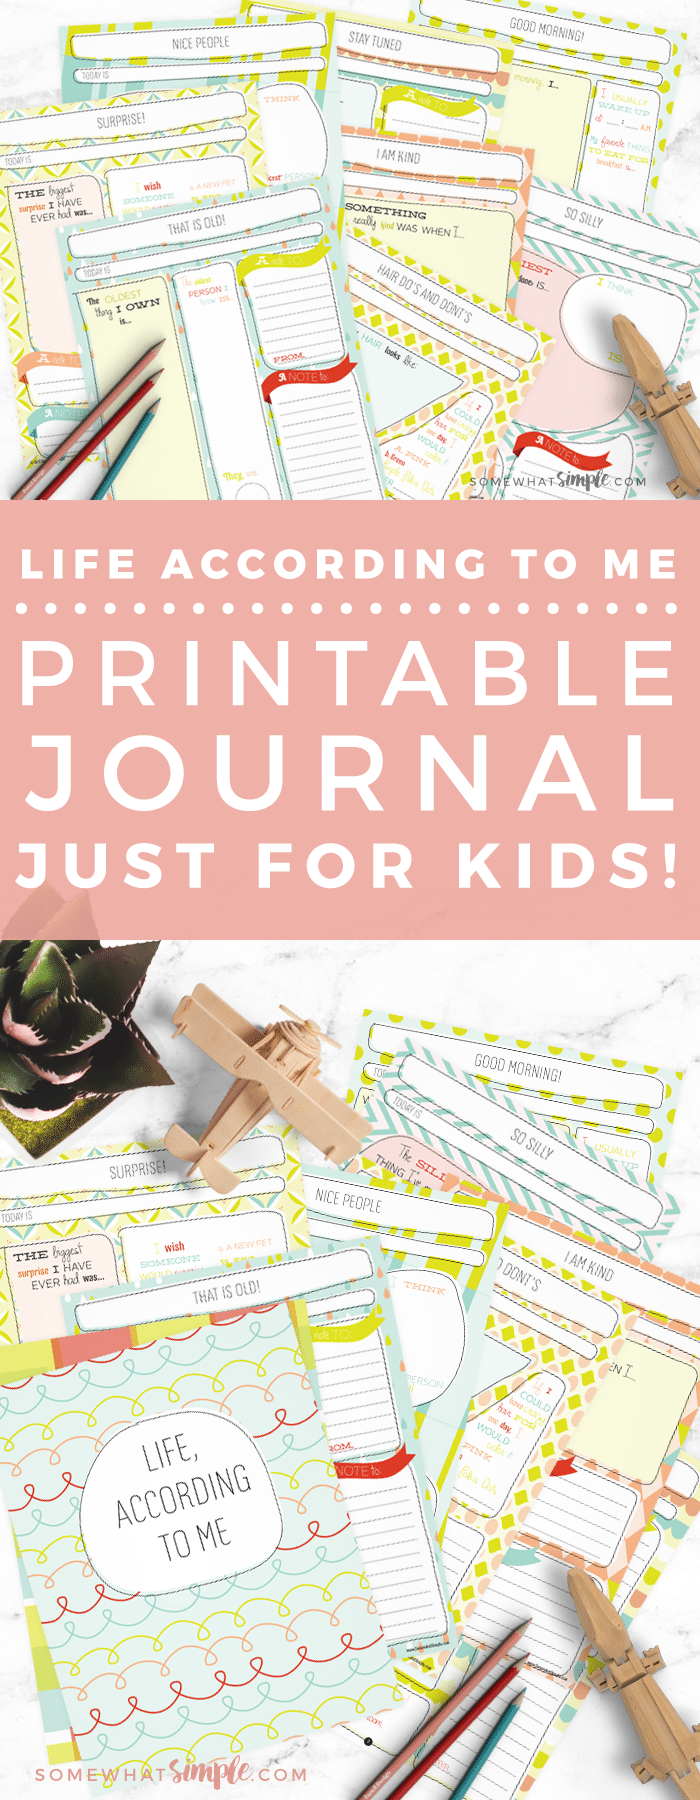 A darling journal for kids with daily prompts, fun fill-in-the-blanks, and spaces for them to draw and doodle! via @somewhatsimple